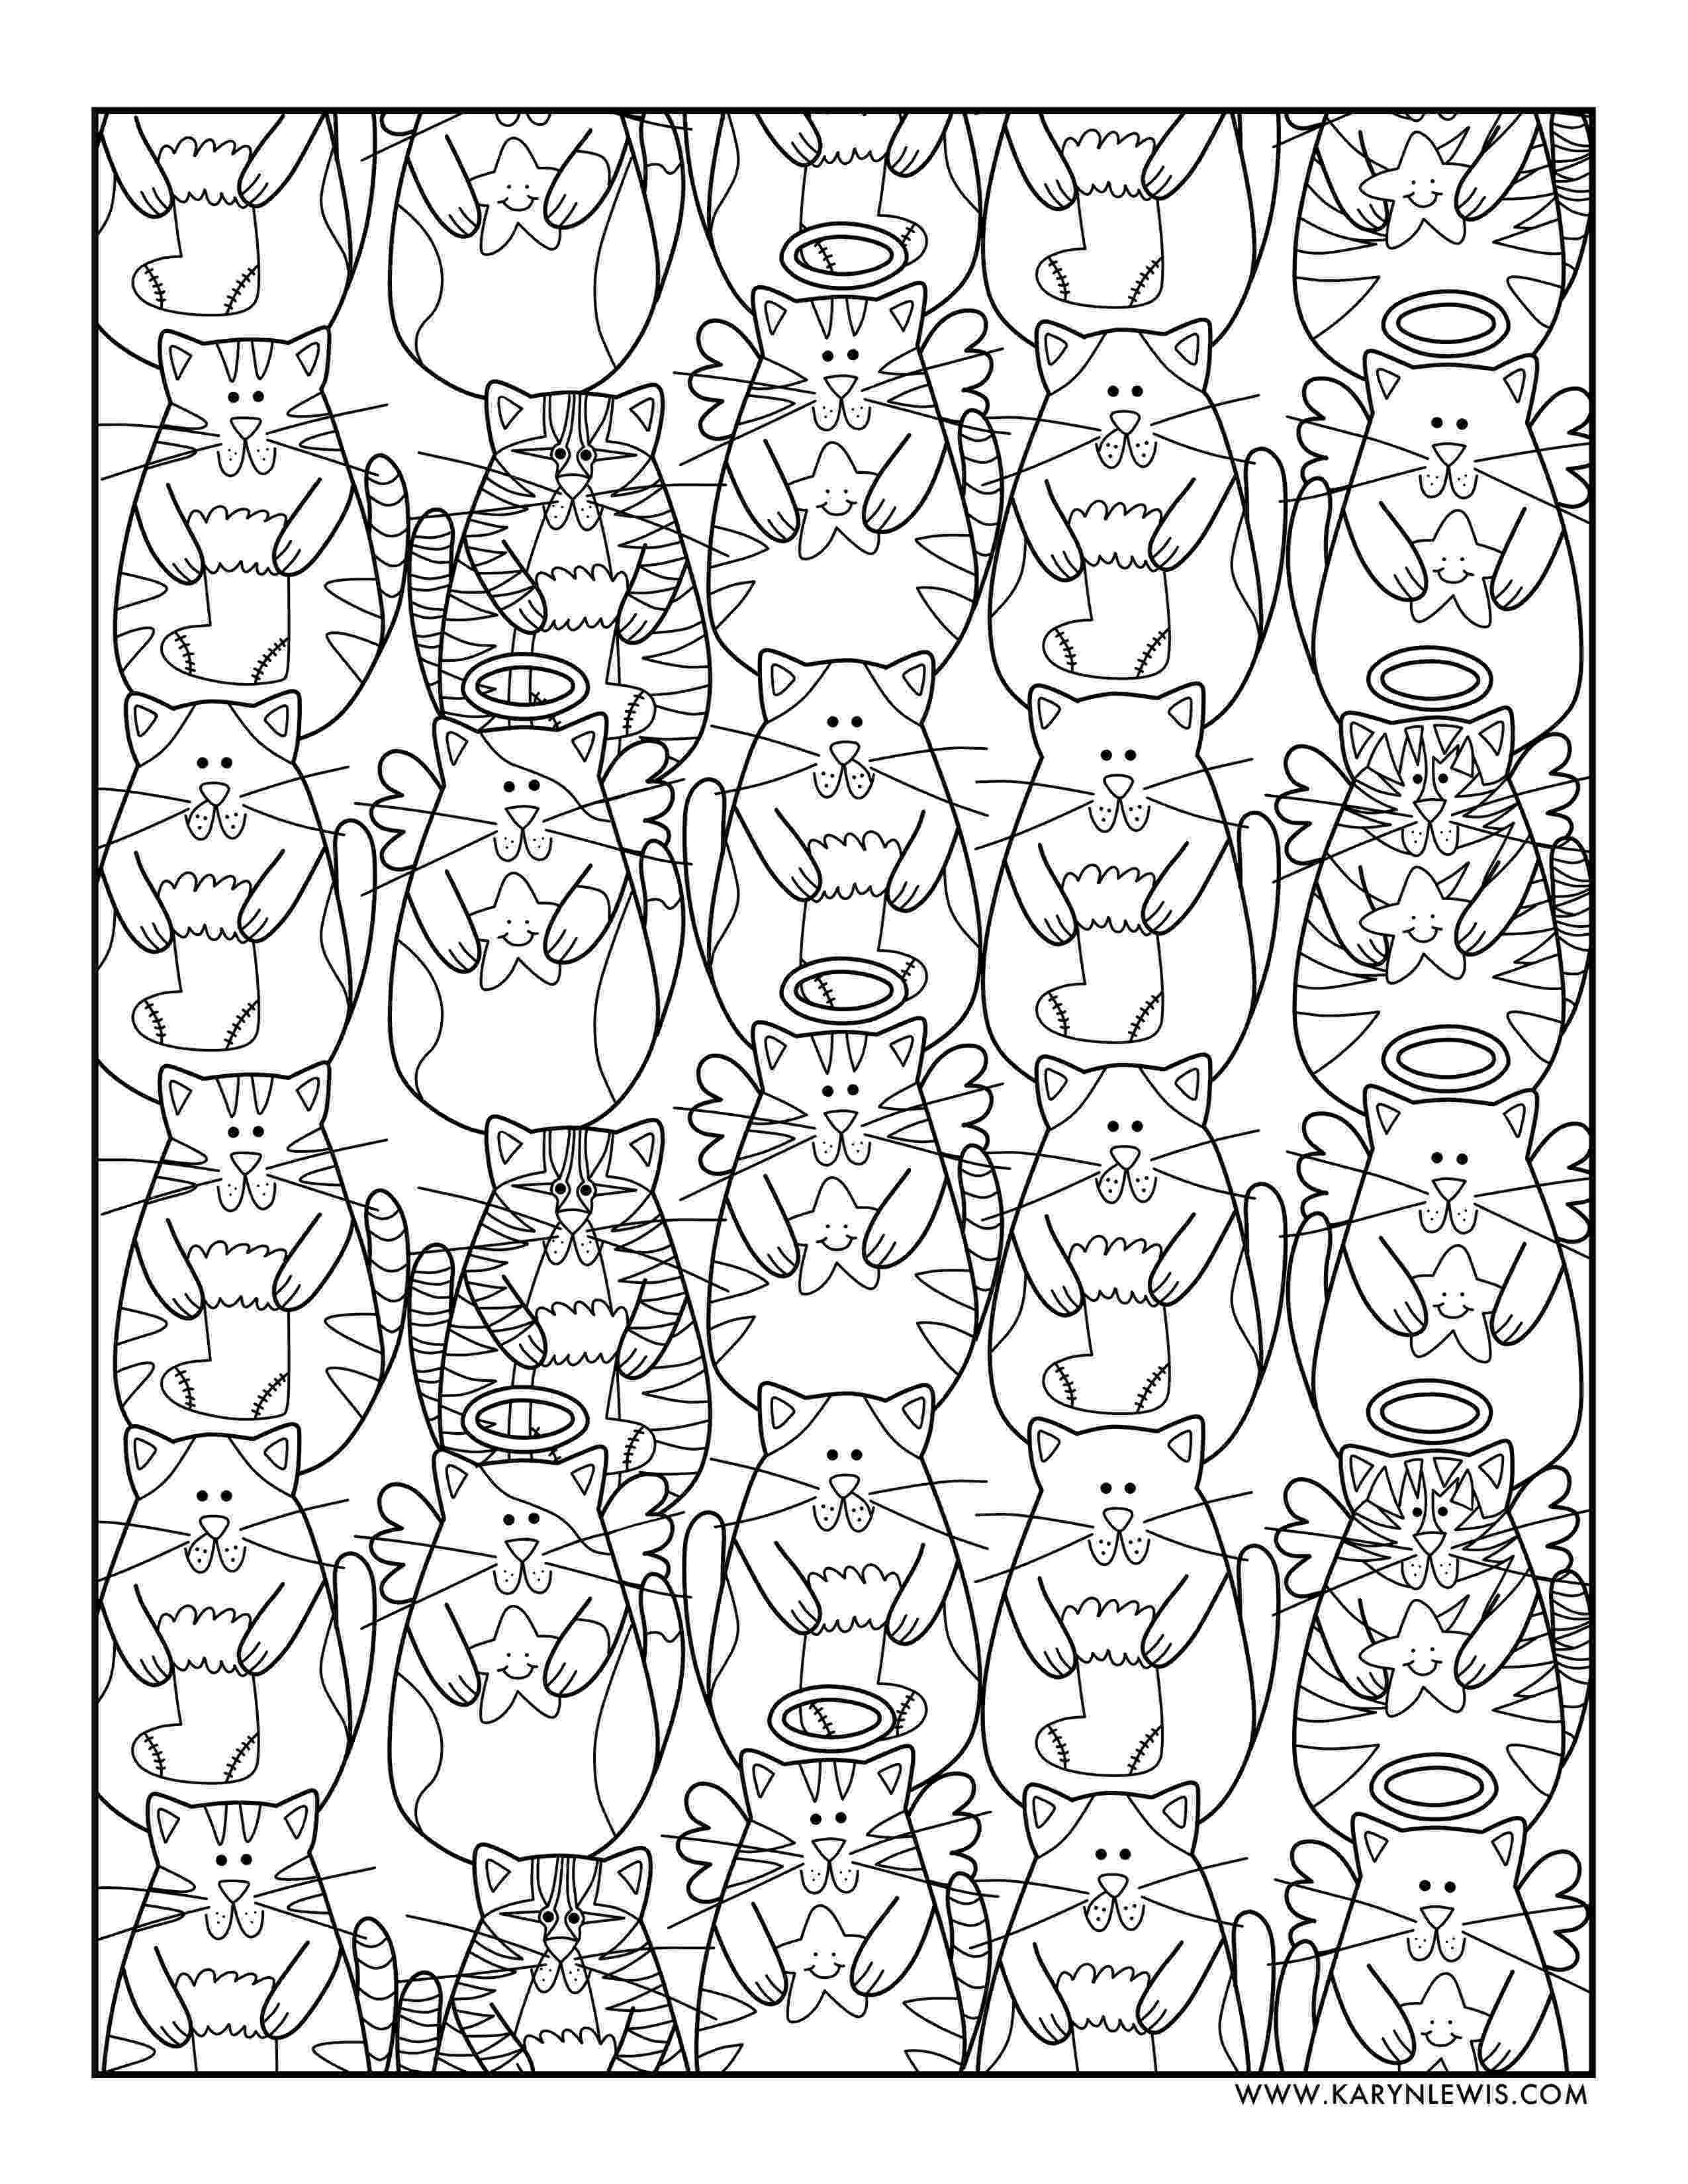 free online coloring pages for adults cats christmas cats free adult coloring page karyn lewis free adults online for coloring pages cats